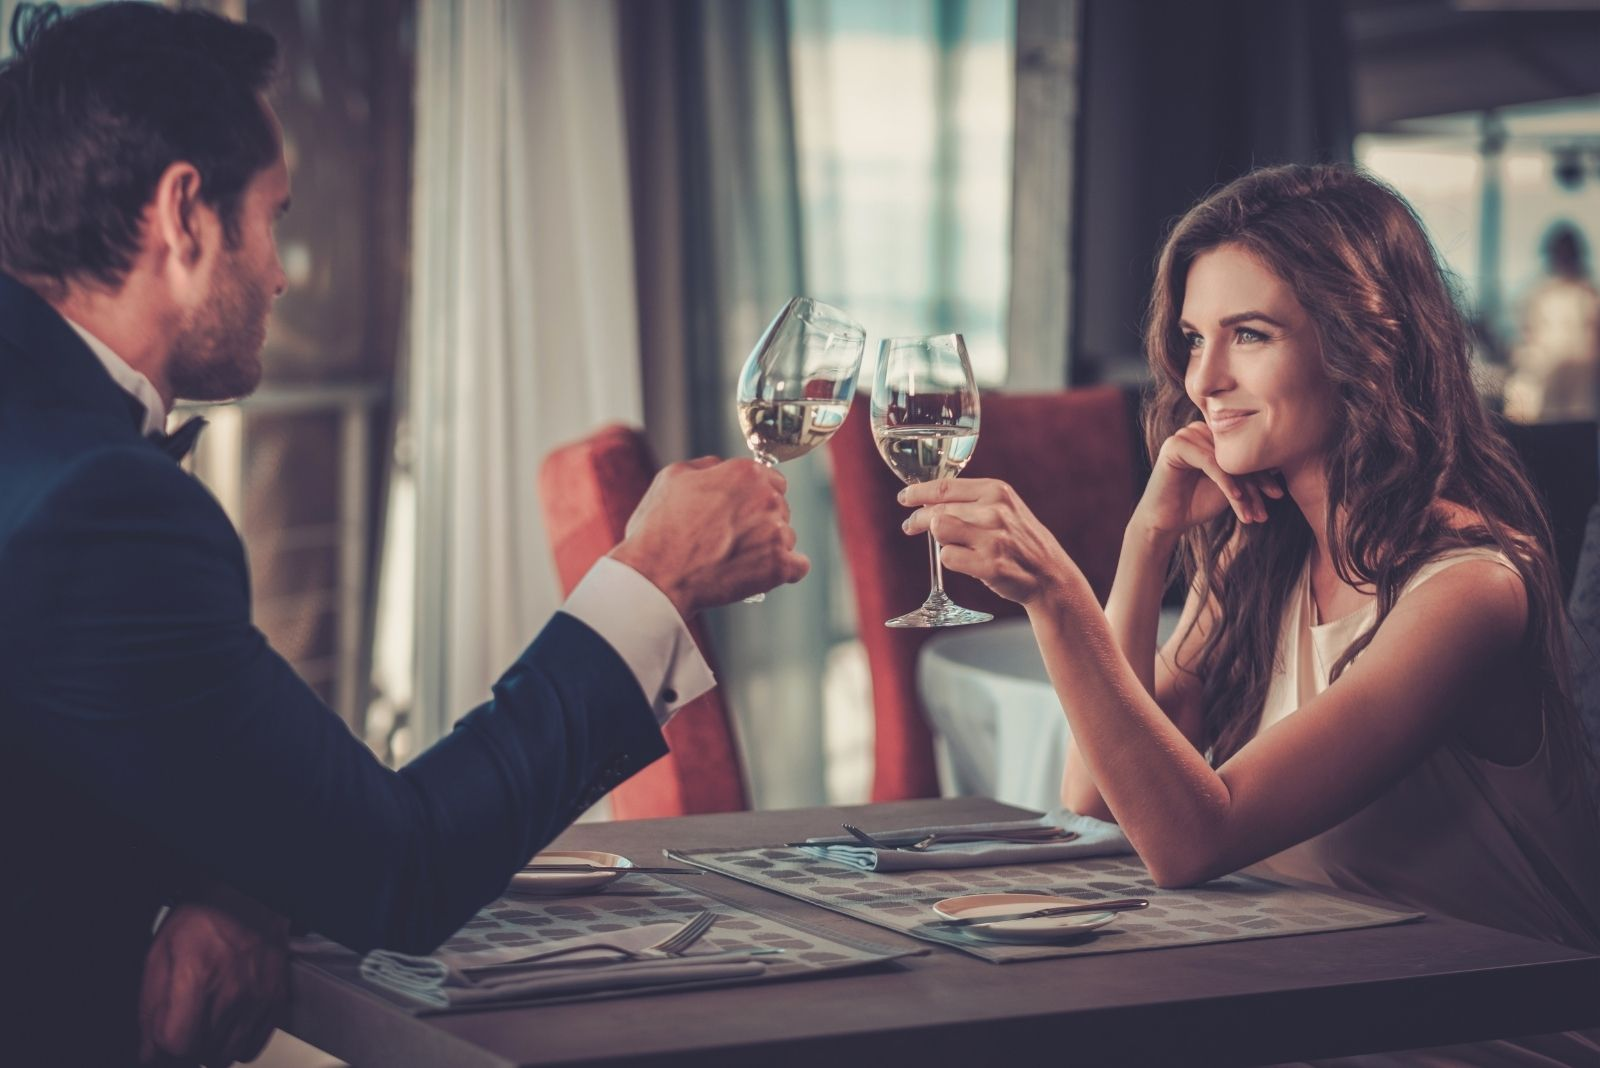 couple clinking wine glasses during their dinner date inside restaurant